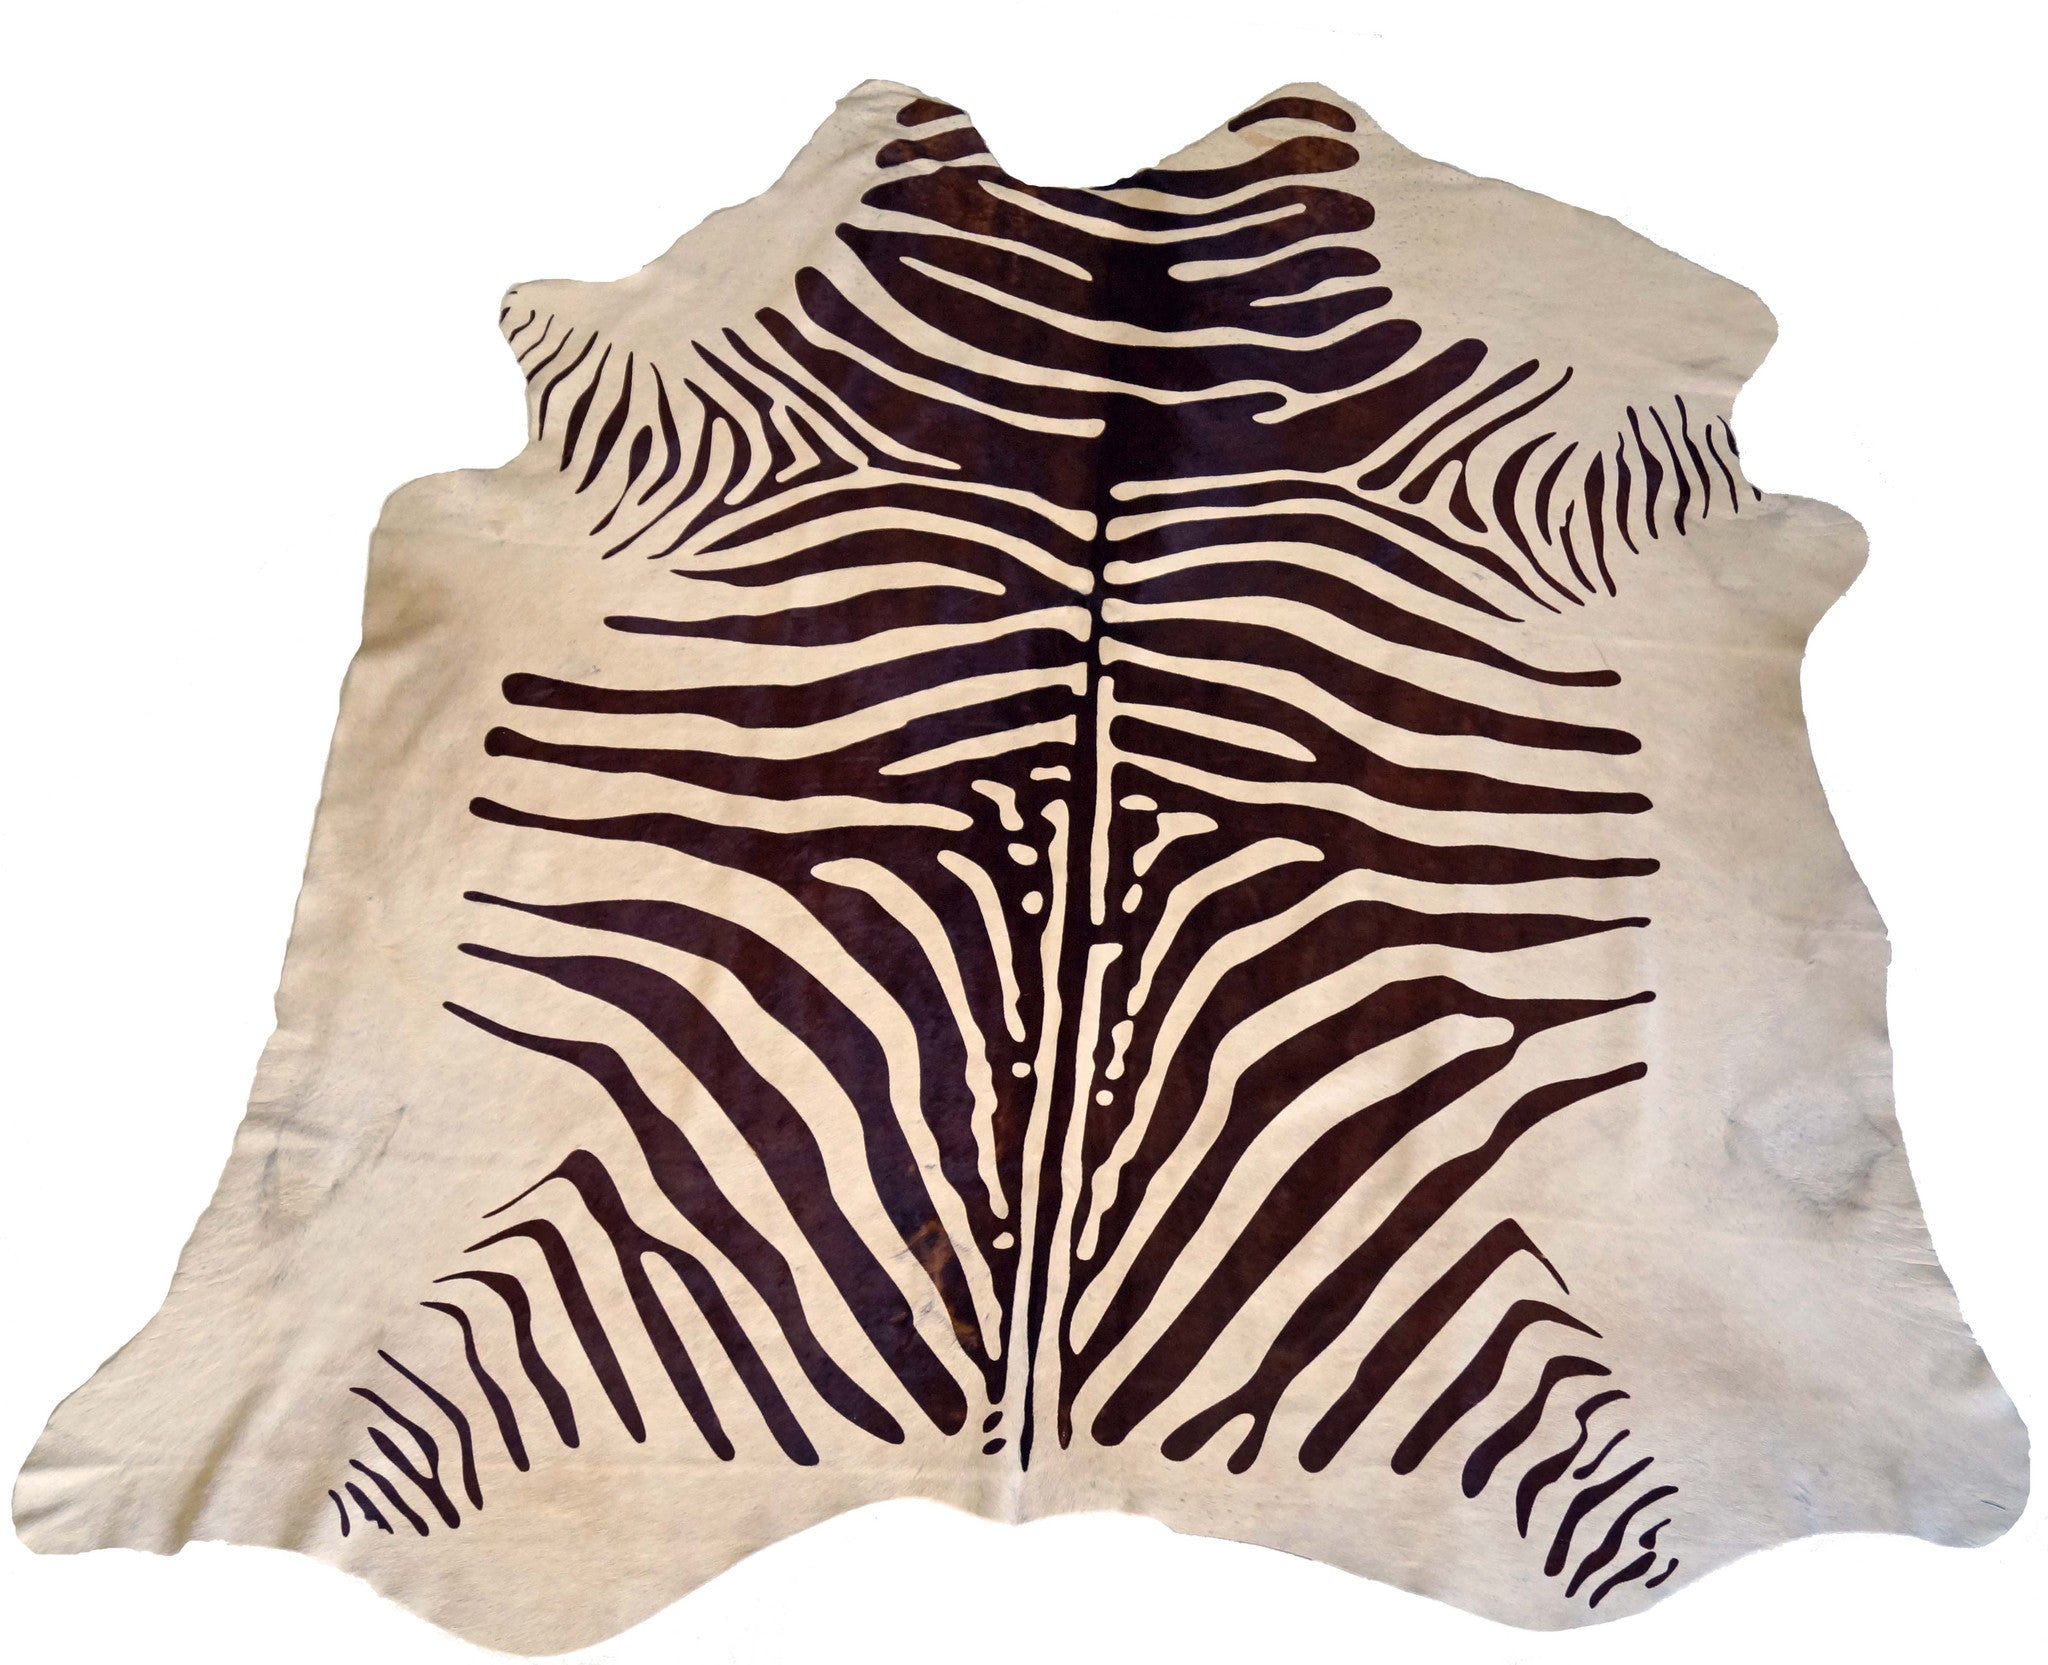 Brown And White Zebra Cowhide Rug Design By Bd Hides Burke Decor